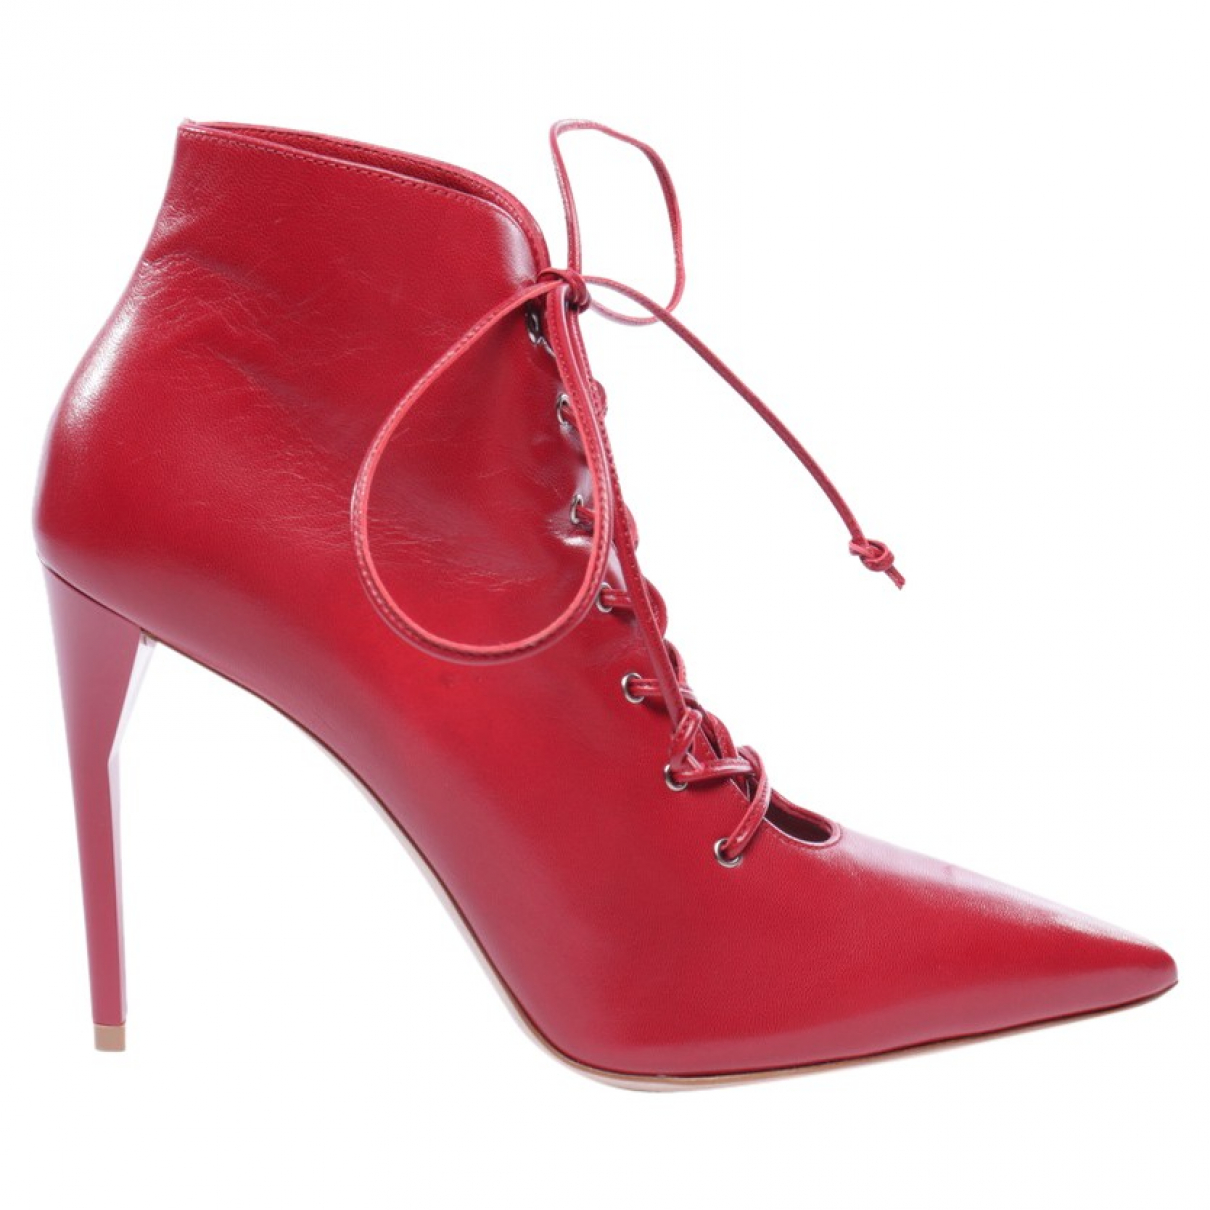 Miu Miu \N Red Leather Ankle boots for Women 37 EU